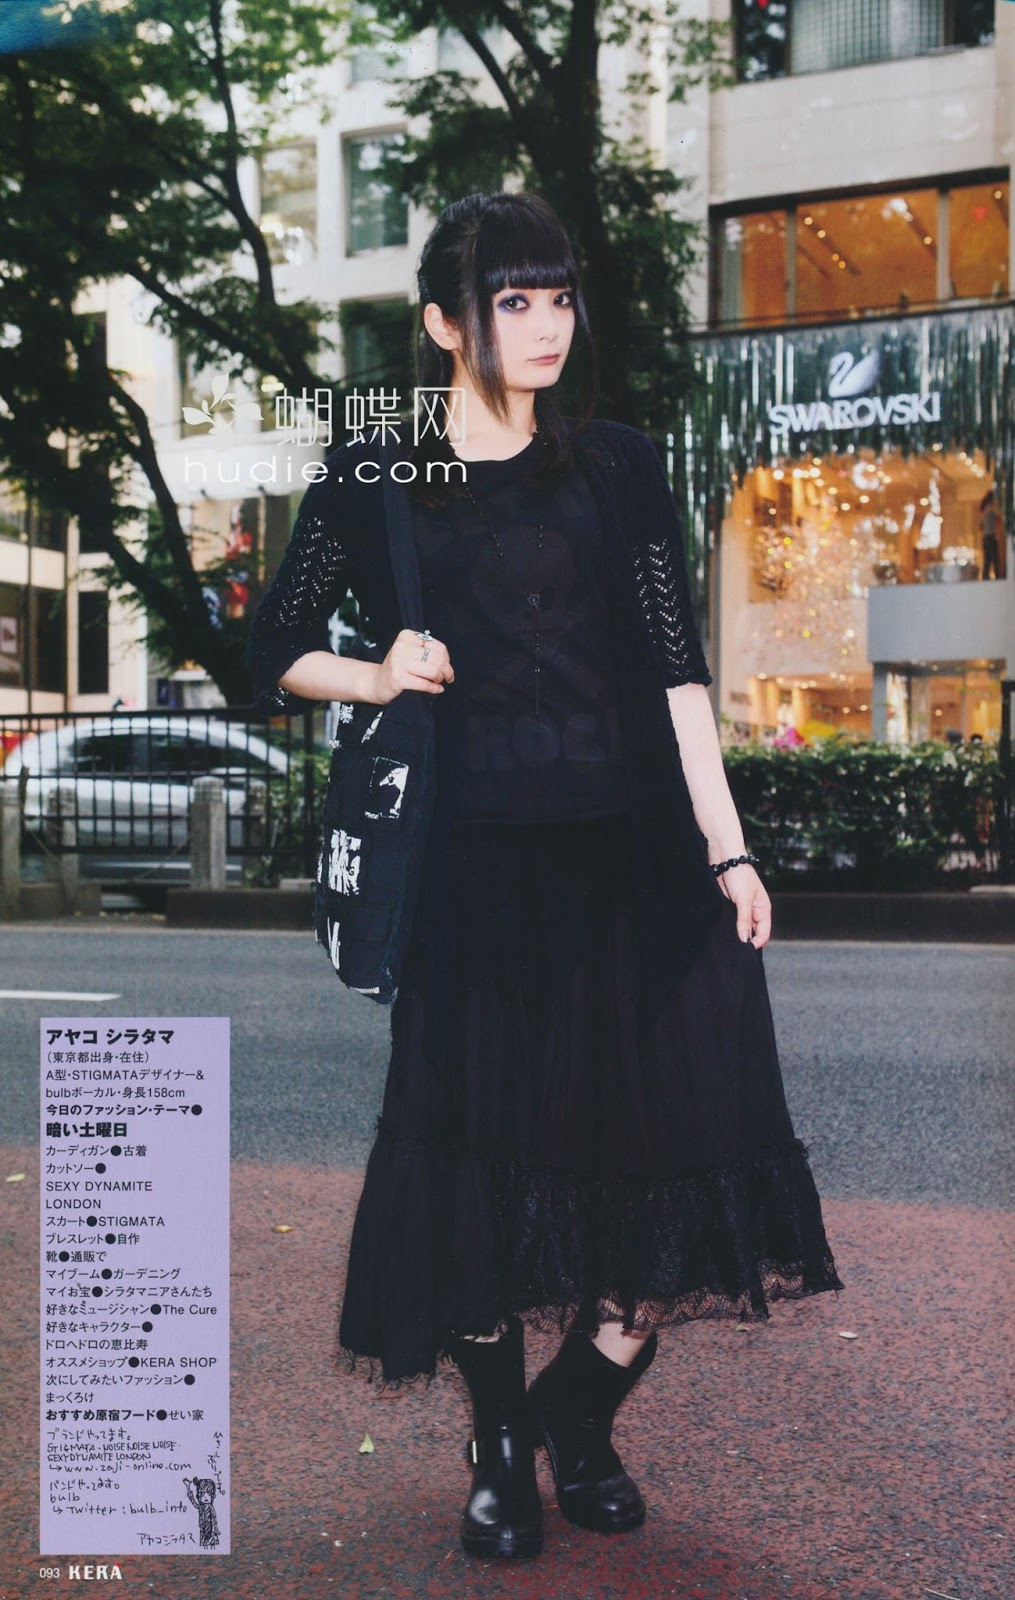 Japanese Gothic Fashion